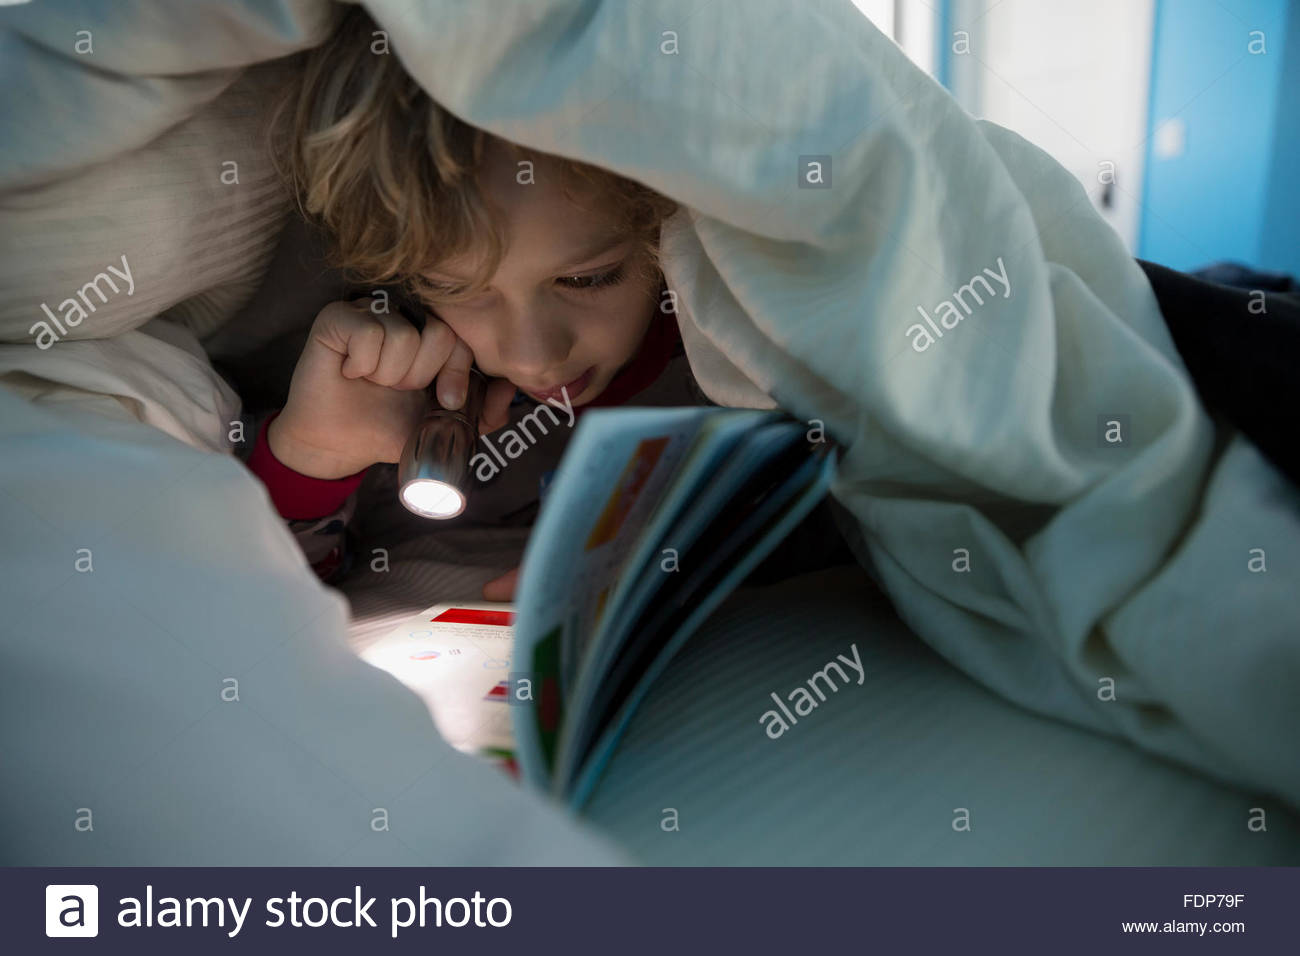 Boy reading book avec lampe de poche sous la couette Photo Stock